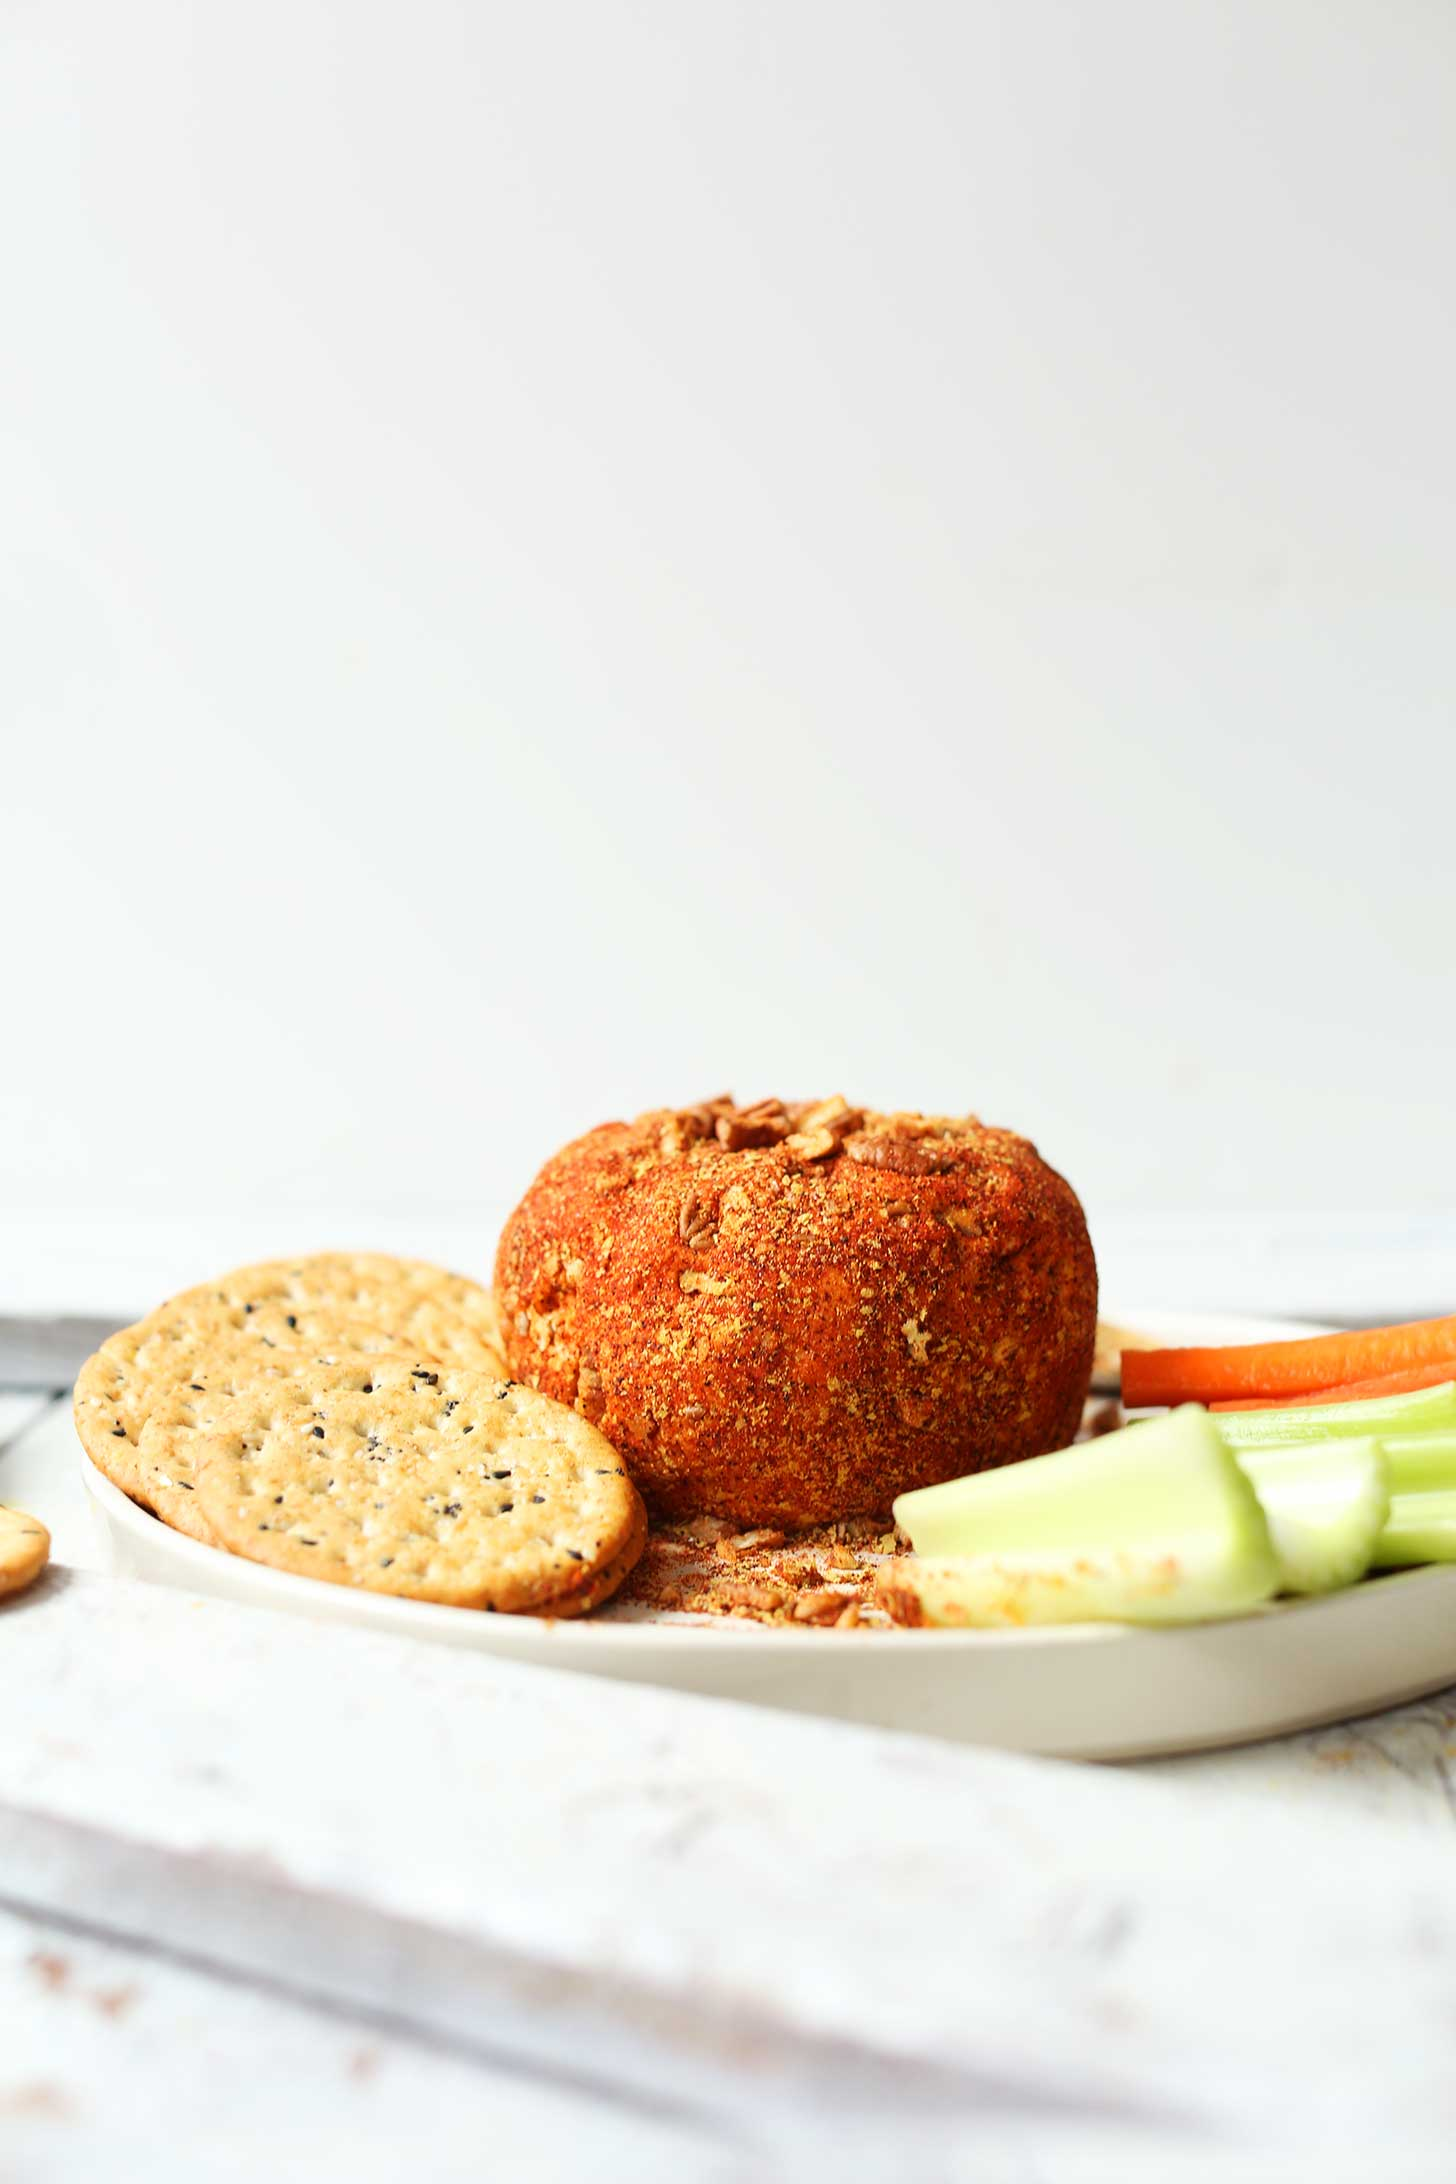 Crackers, veggie sticks, and a Spicy Vegan Cheese Ball for the perfect holiday appetizer